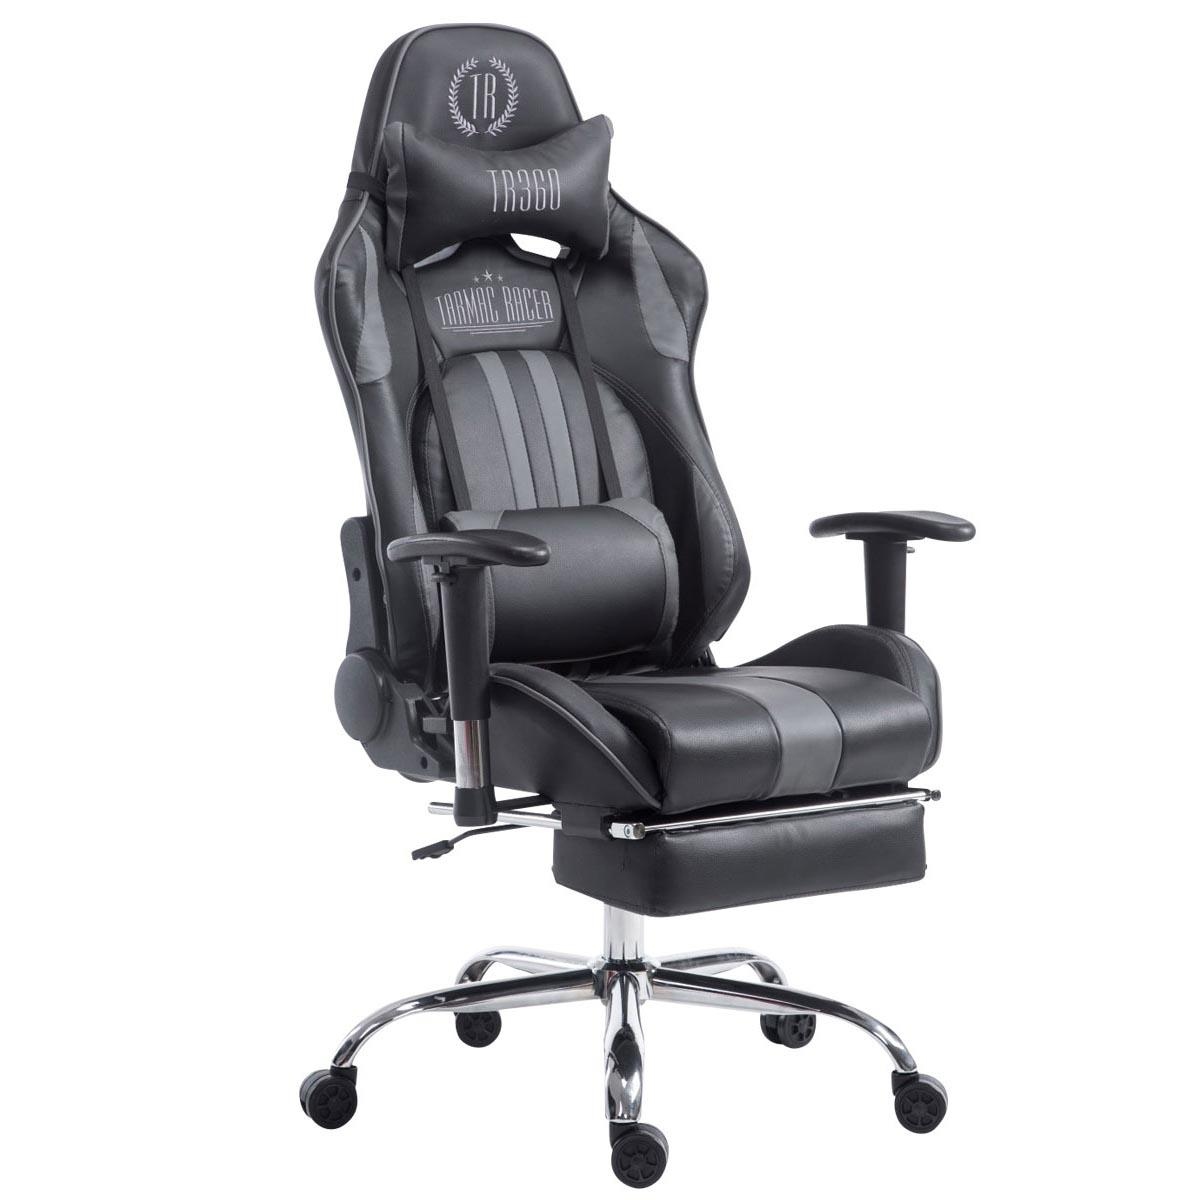 Silla Gaming LOGAN con Reposapiés, Respaldo Reclinable, Cojines Incluidos, Base de Metal, En Negro/Gris